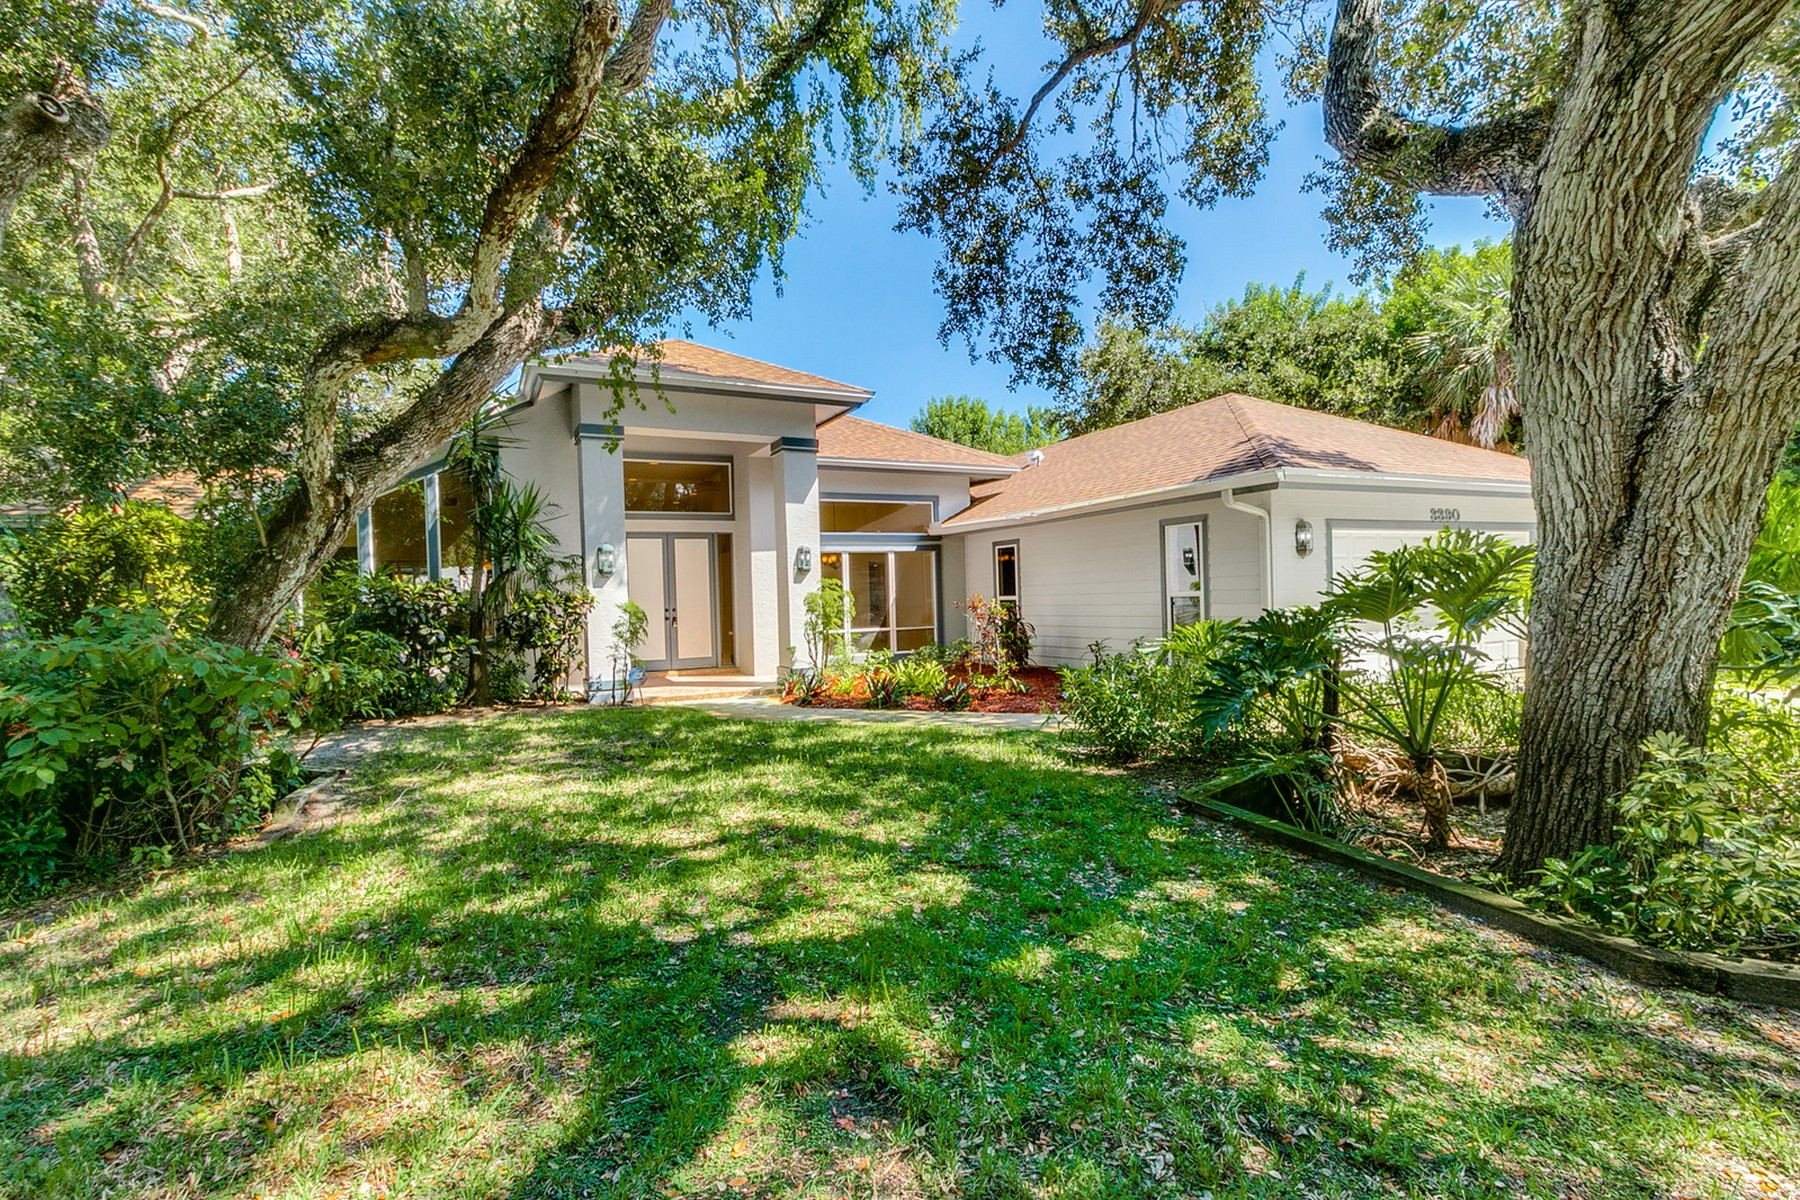 Single Family Homes for Sale at Beachside Home on Over One Half Acre! 3390 Mariners Way Vero Beach, Florida 32963 United States